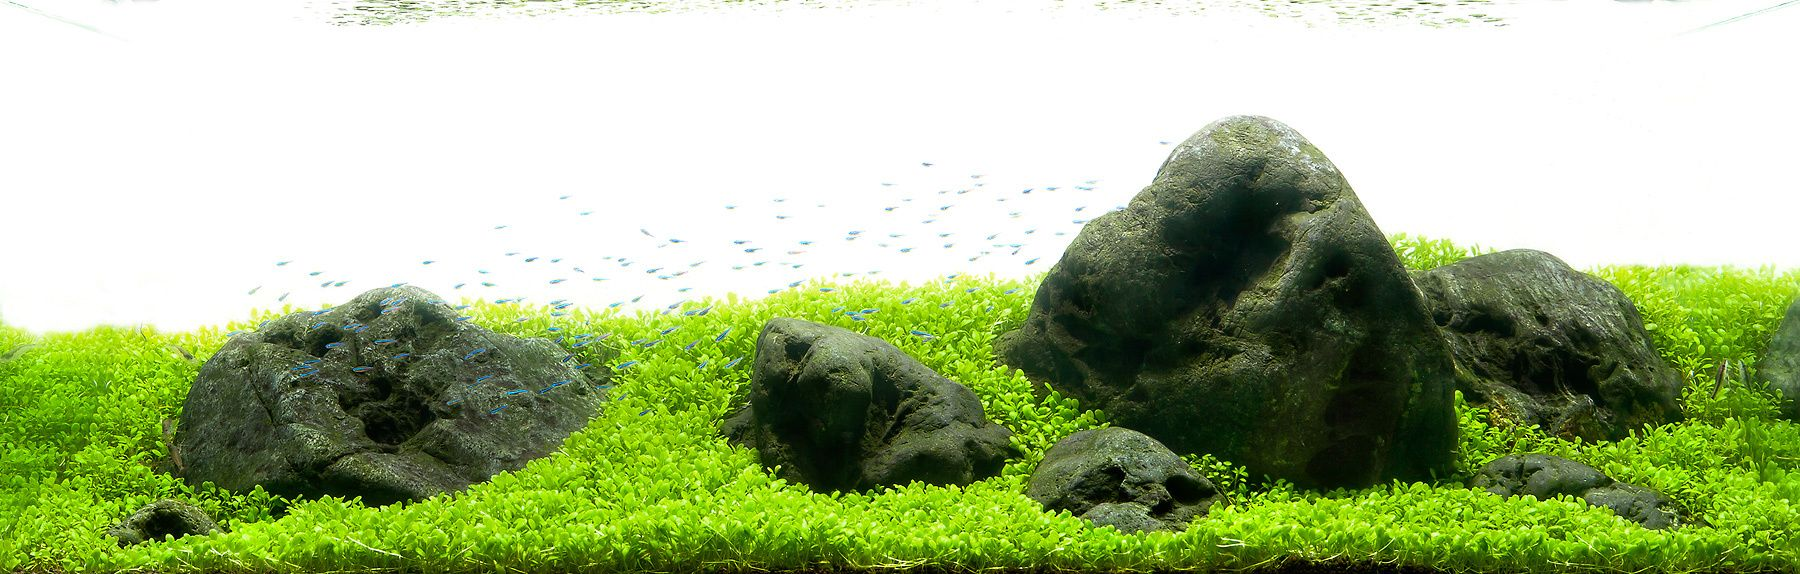 Fish tank japan - Aquarium Design Group An Aquascape Using Hakkai Stones